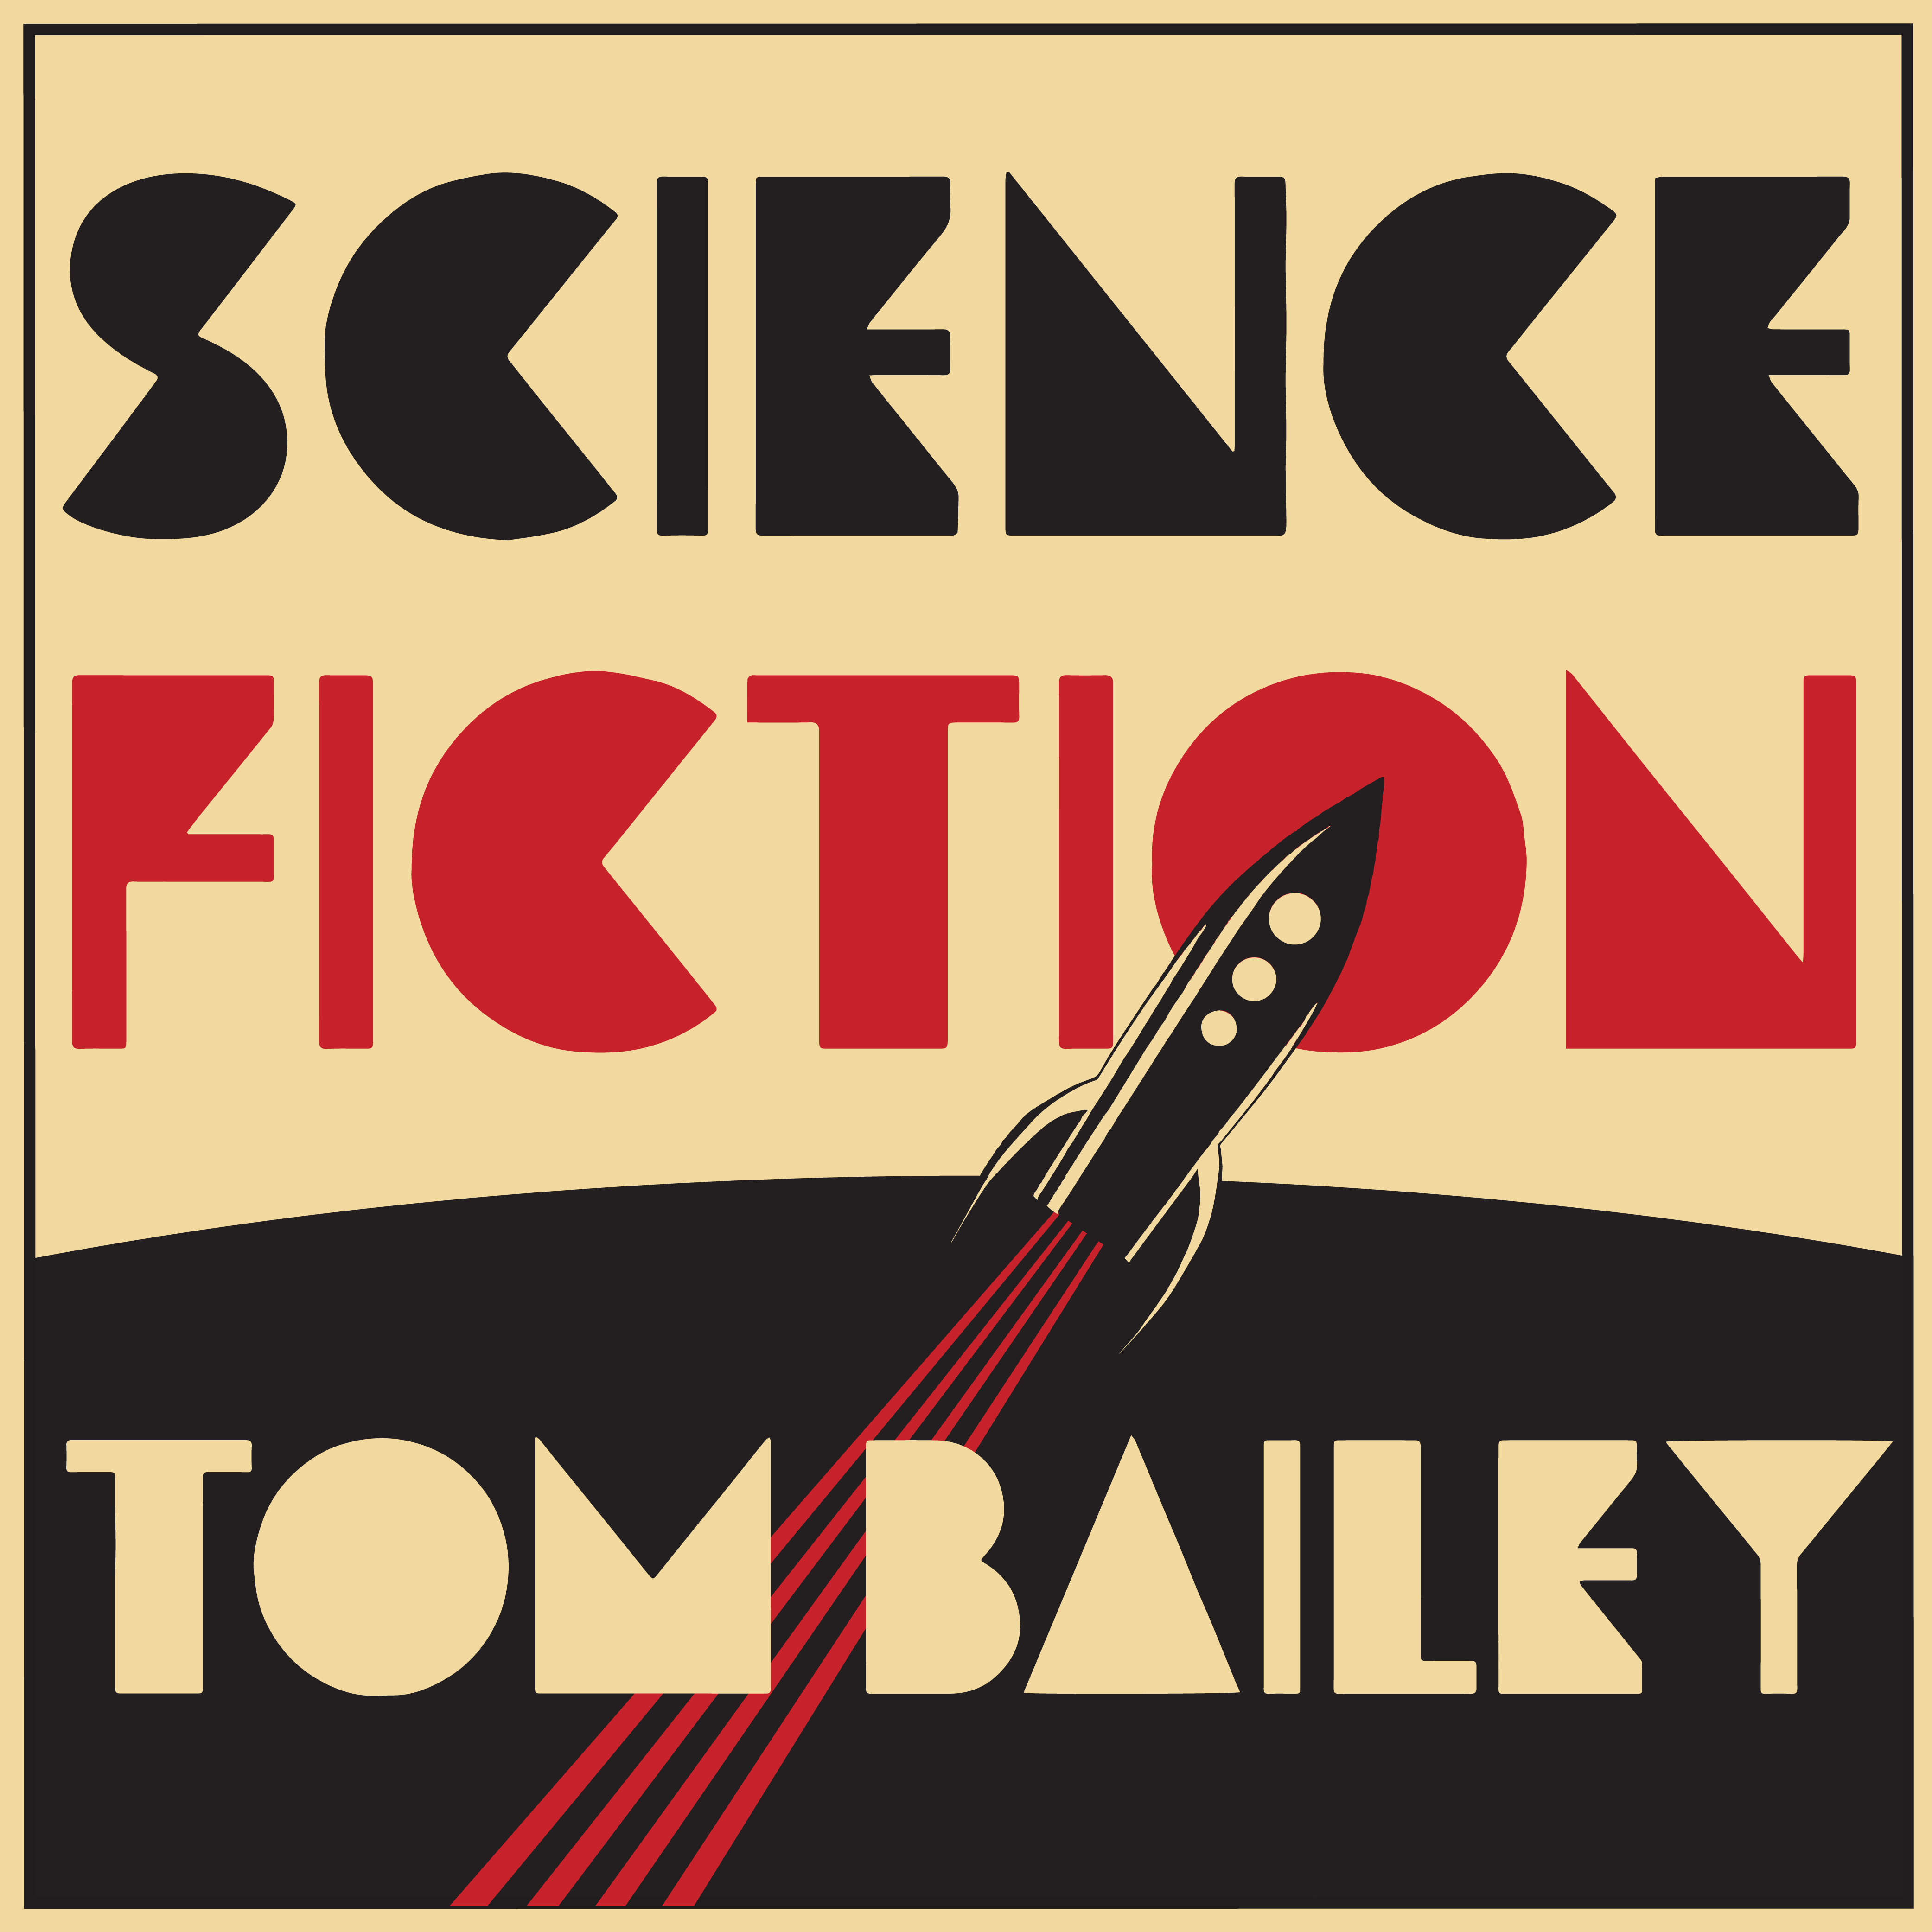 Here's to Future Days: Tom Bailey interview - Science Fiction